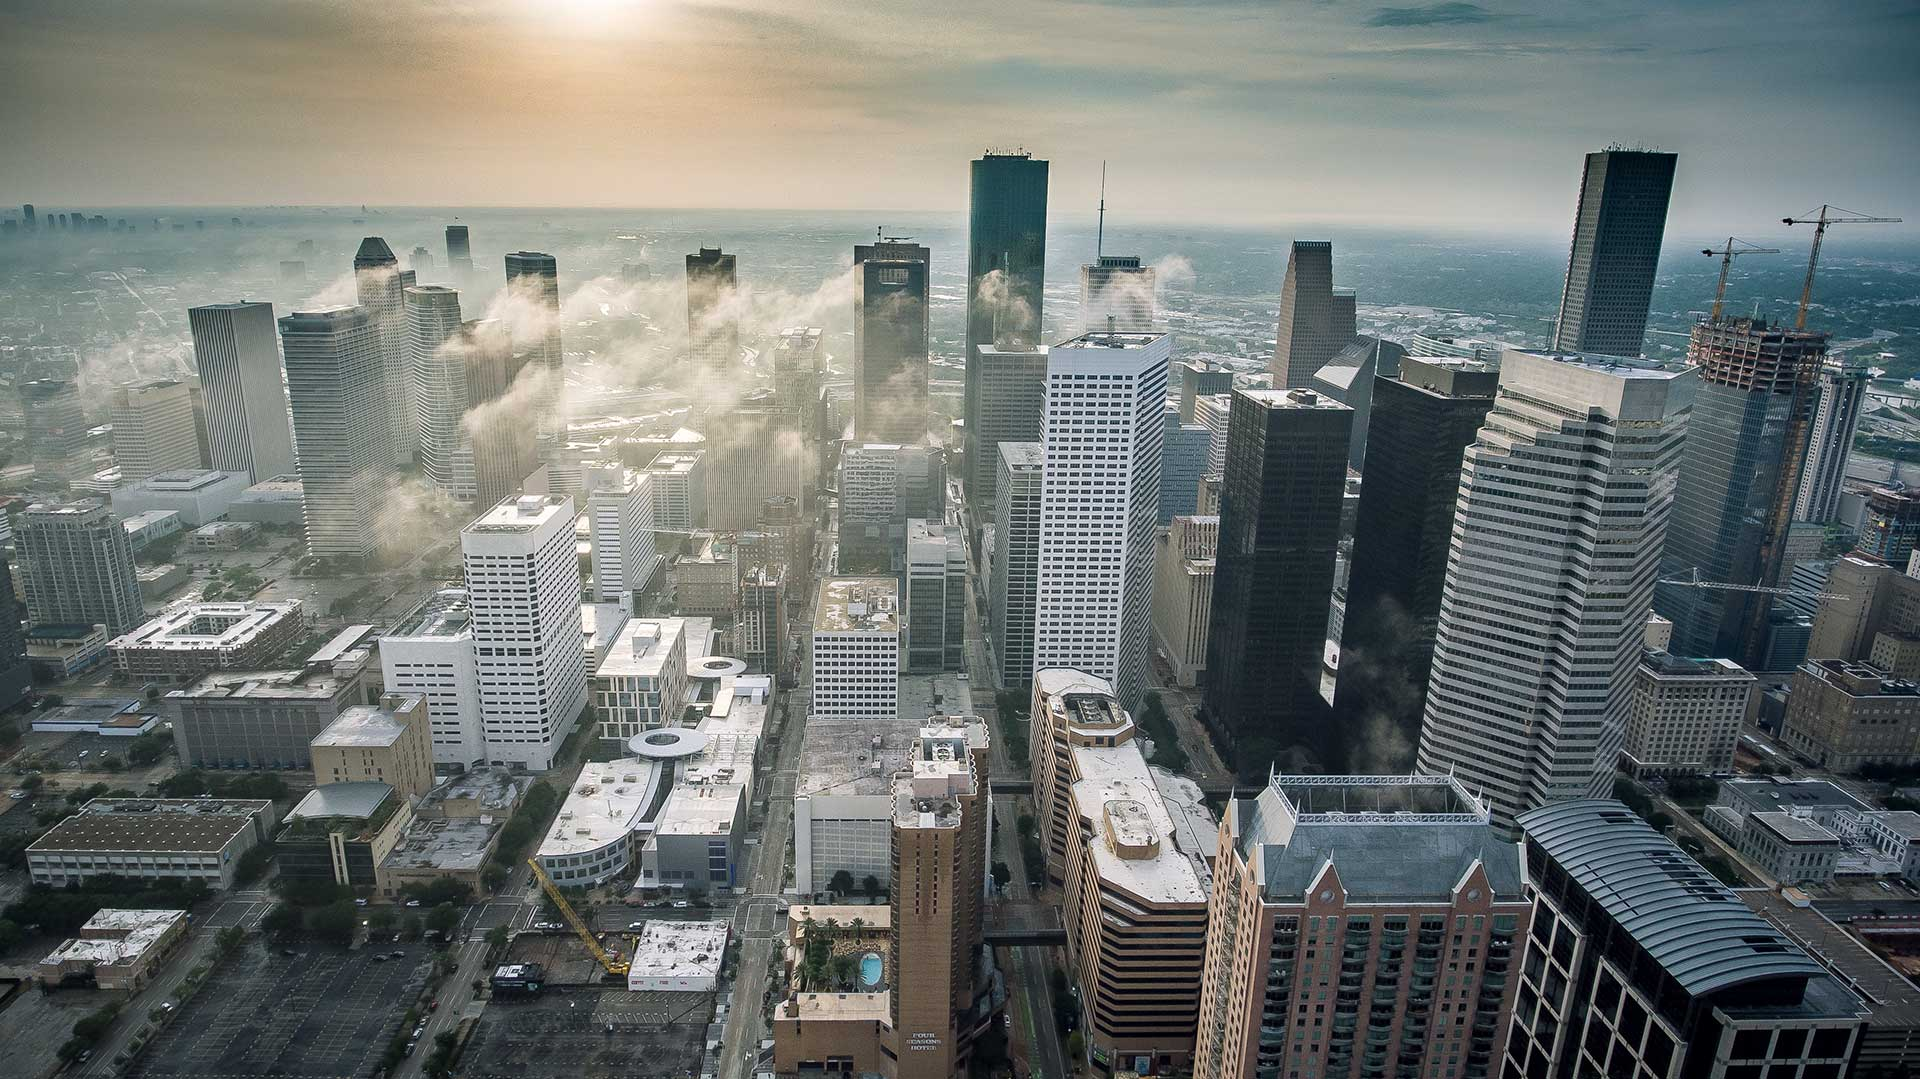 Aerial view of skyscrapers in Houston's downtown core as steam rises from some buildings